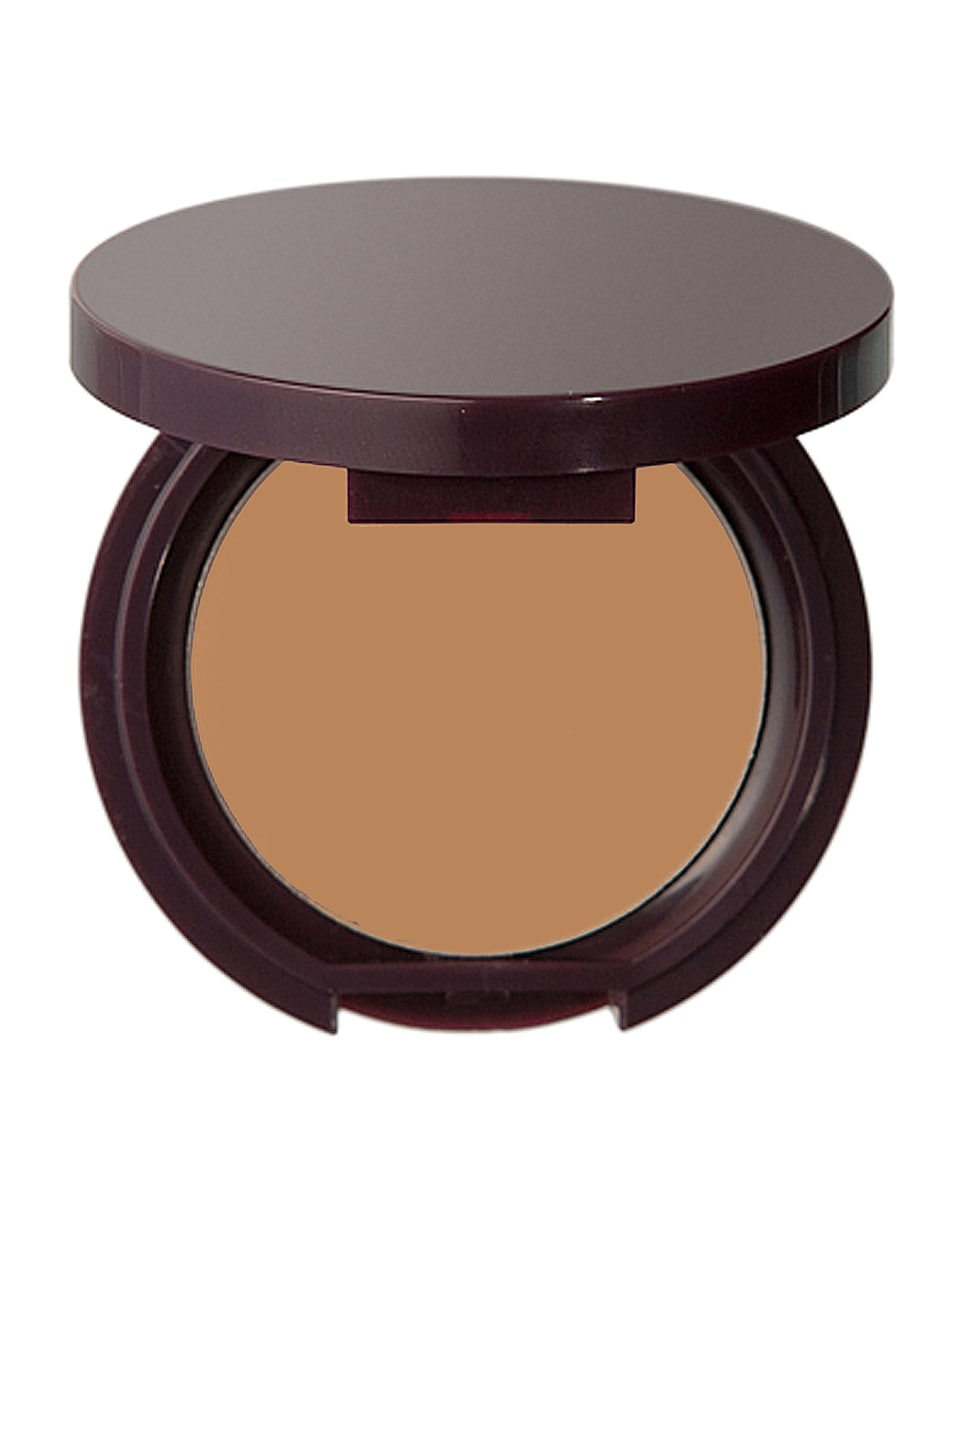 100% Pure Long Lasting Concealer in Golden Peach